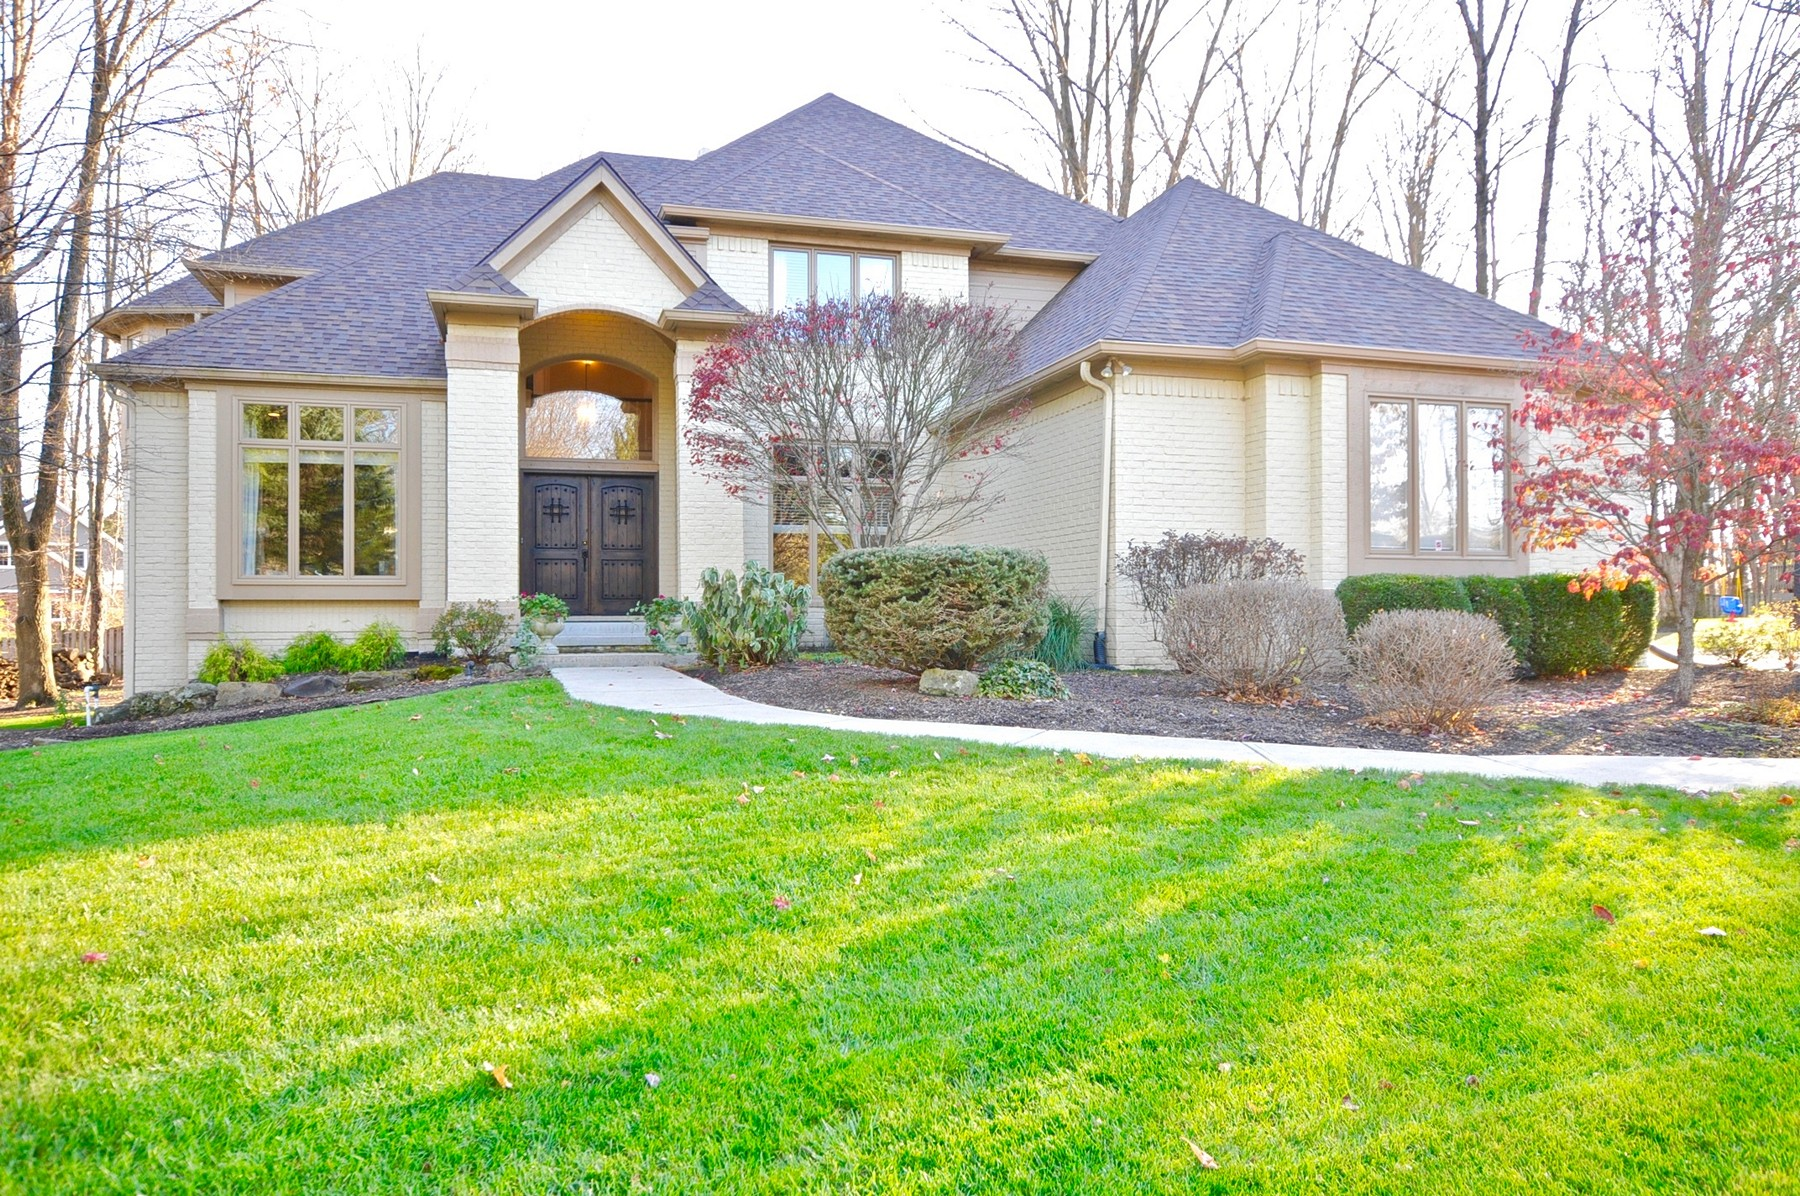 Single Family Home for Sale at Tucked Behind The Gates of Anchorage 10215 Summerlin Way Fishers, Indiana, 46037 United States